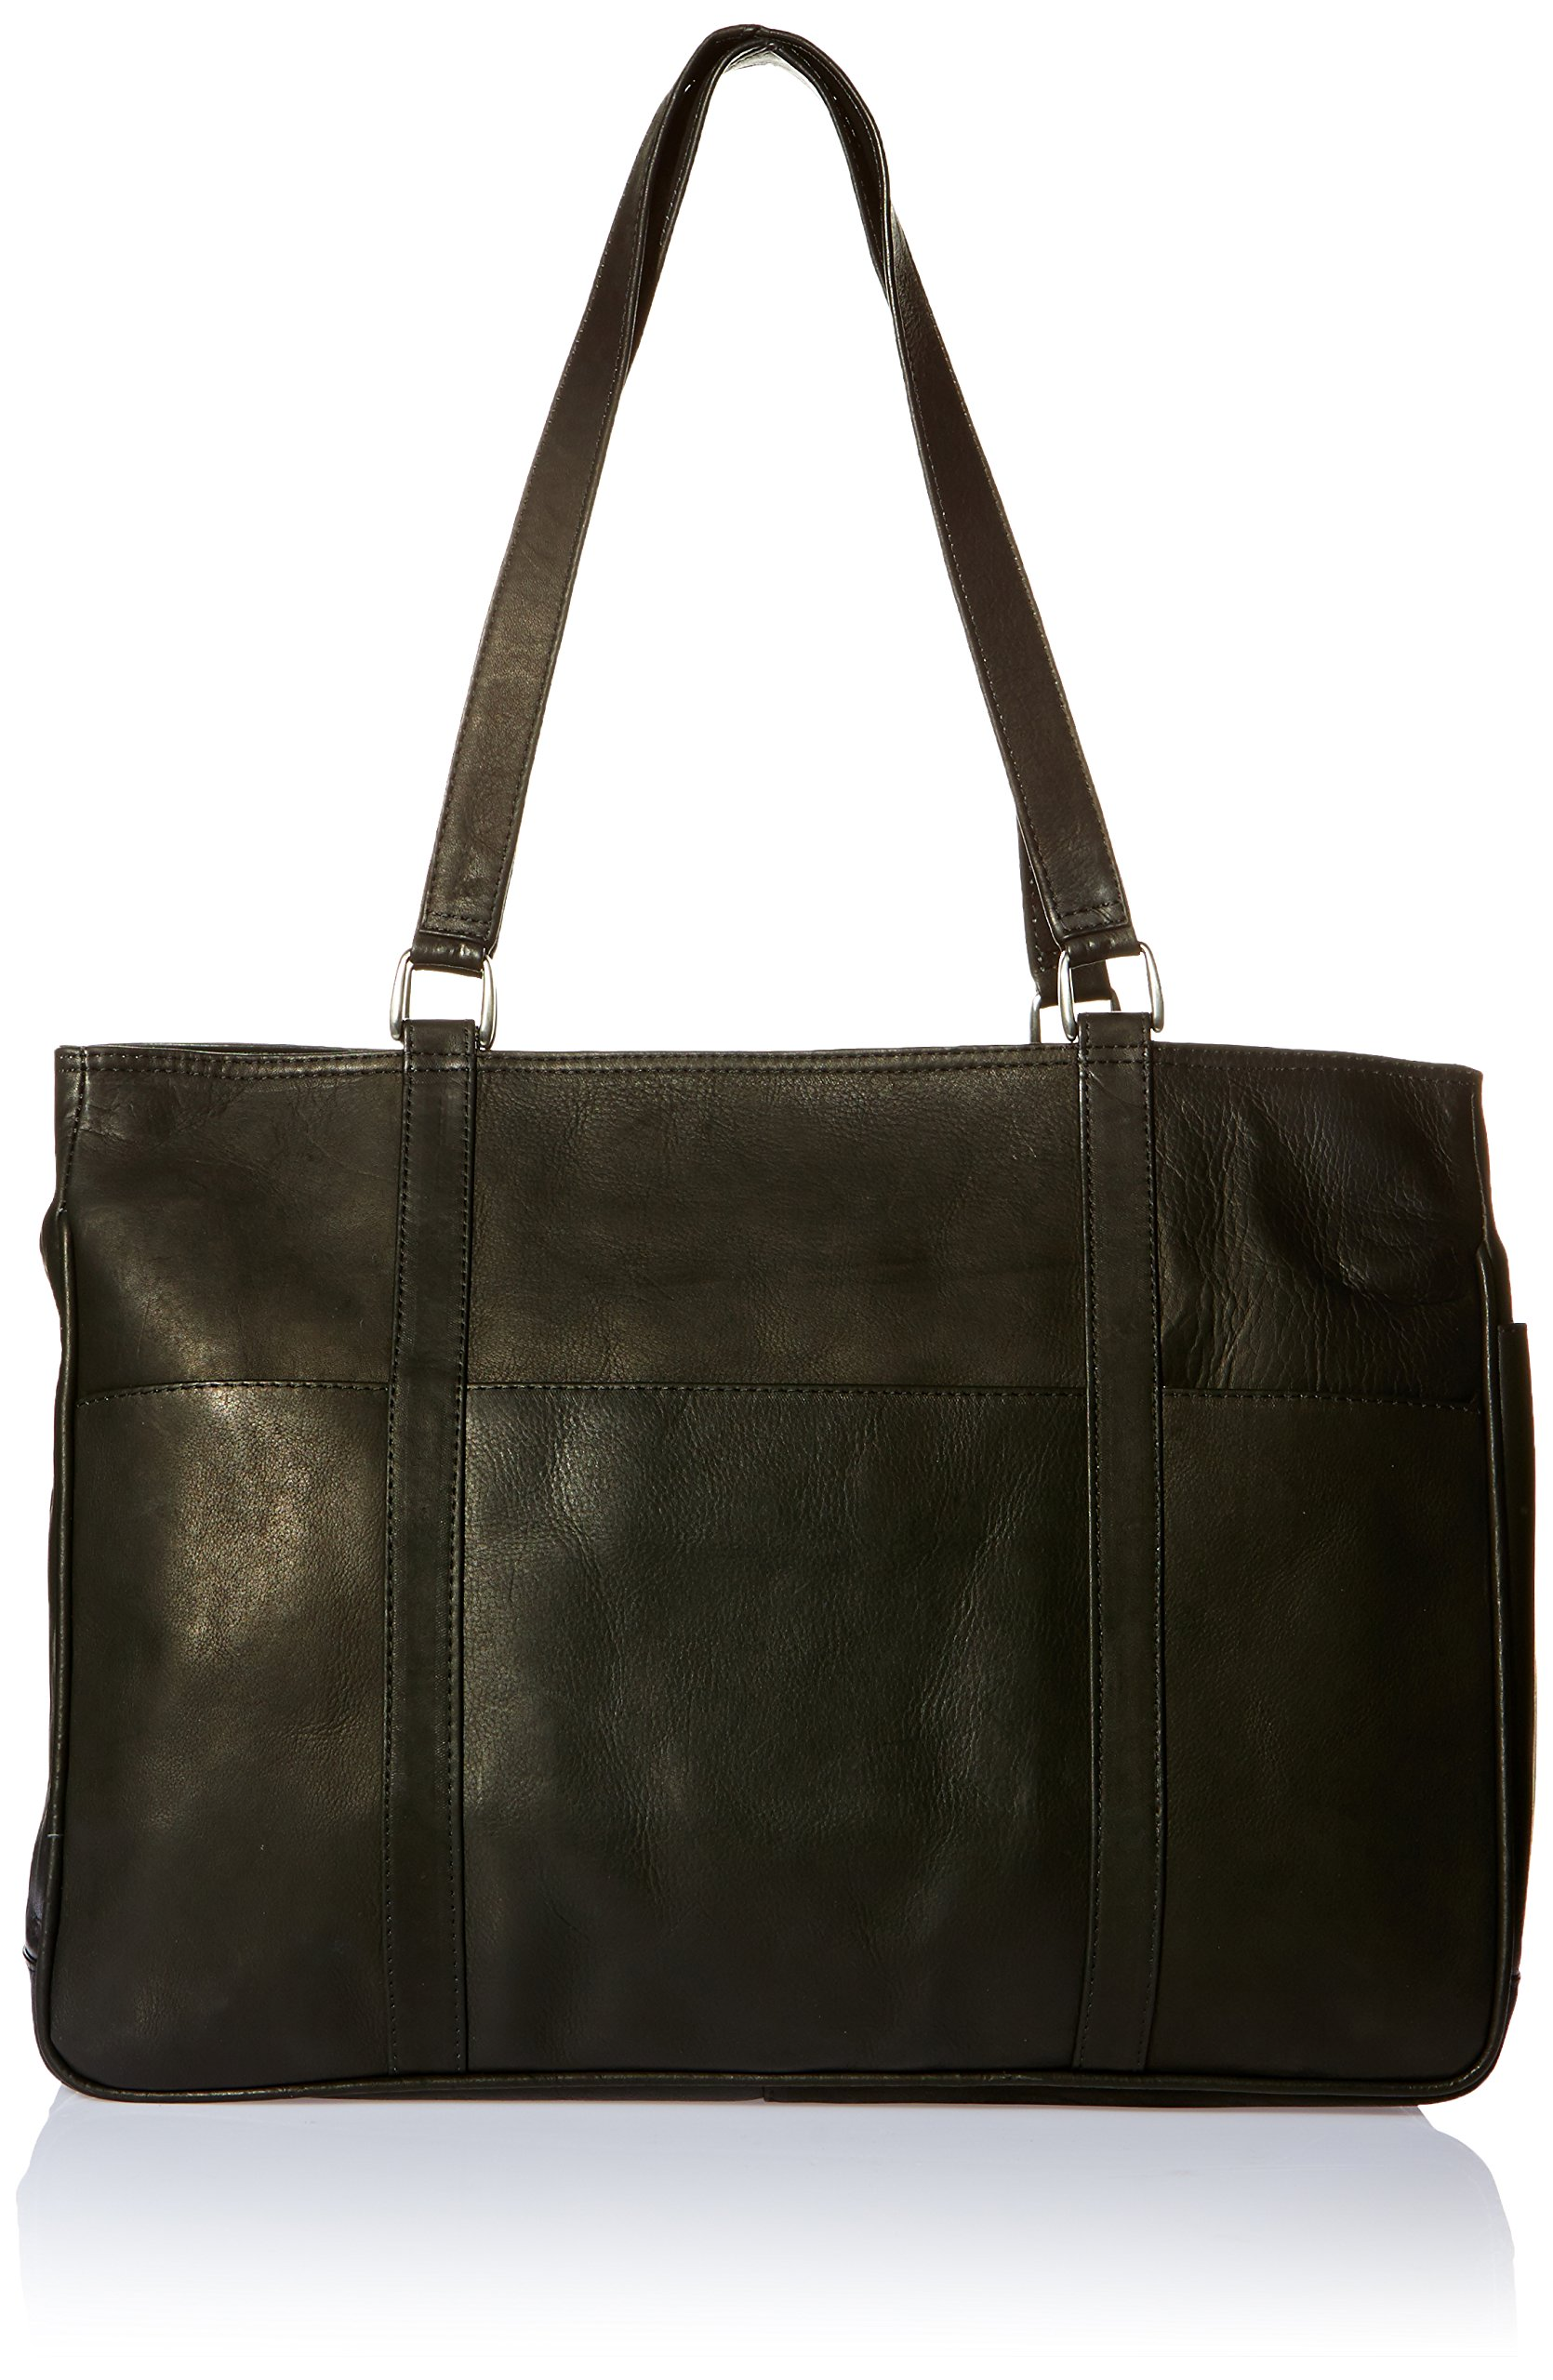 Piel Leather Large Shopping Bag, Black, One Size by Piel Leather (Image #1)